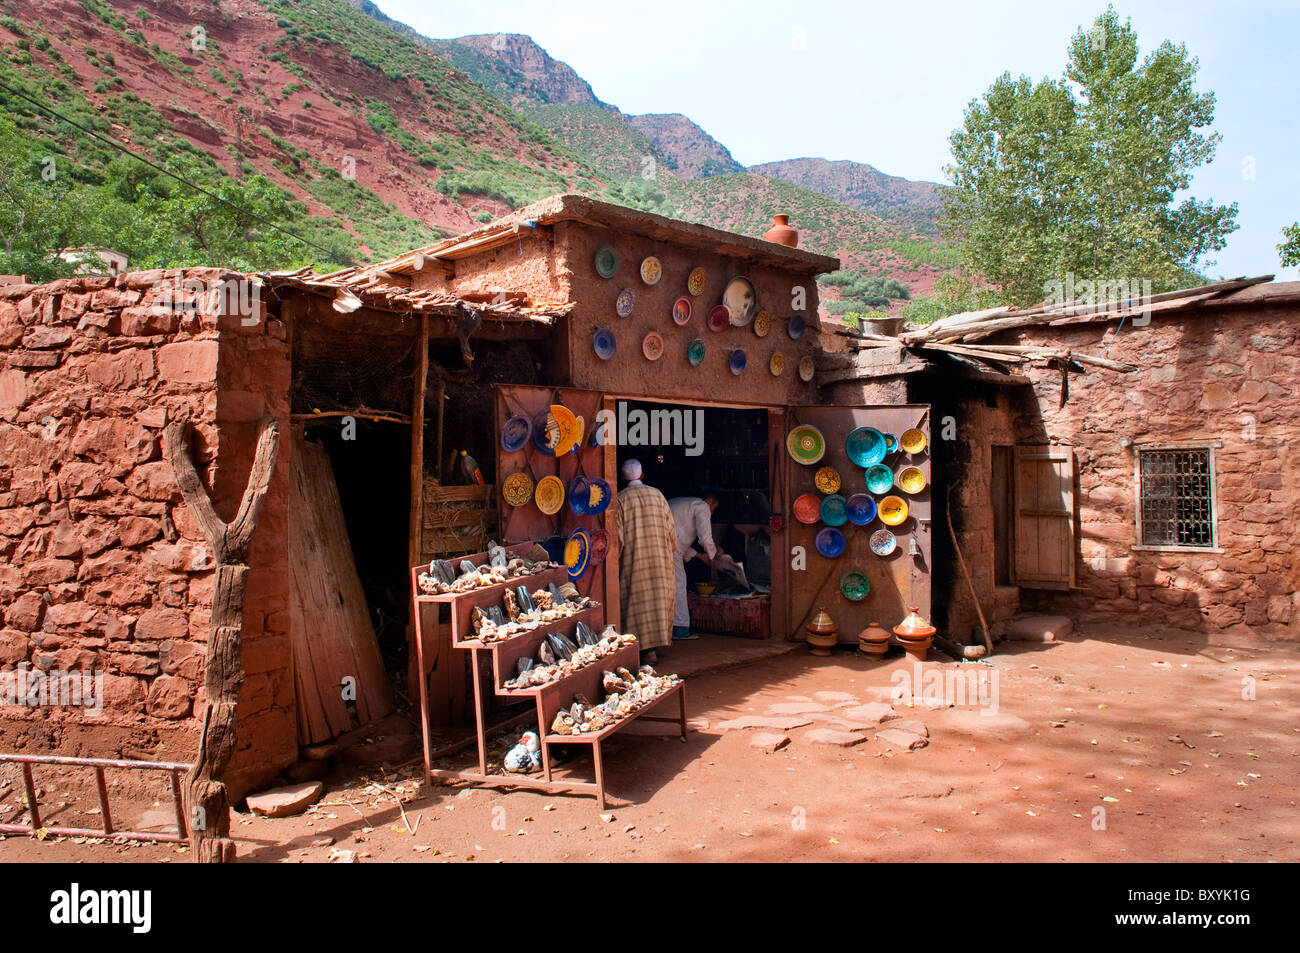 Shops in a Berber village in the Ourika Valley in the Atlas Mountains of Morocco. - Stock Image